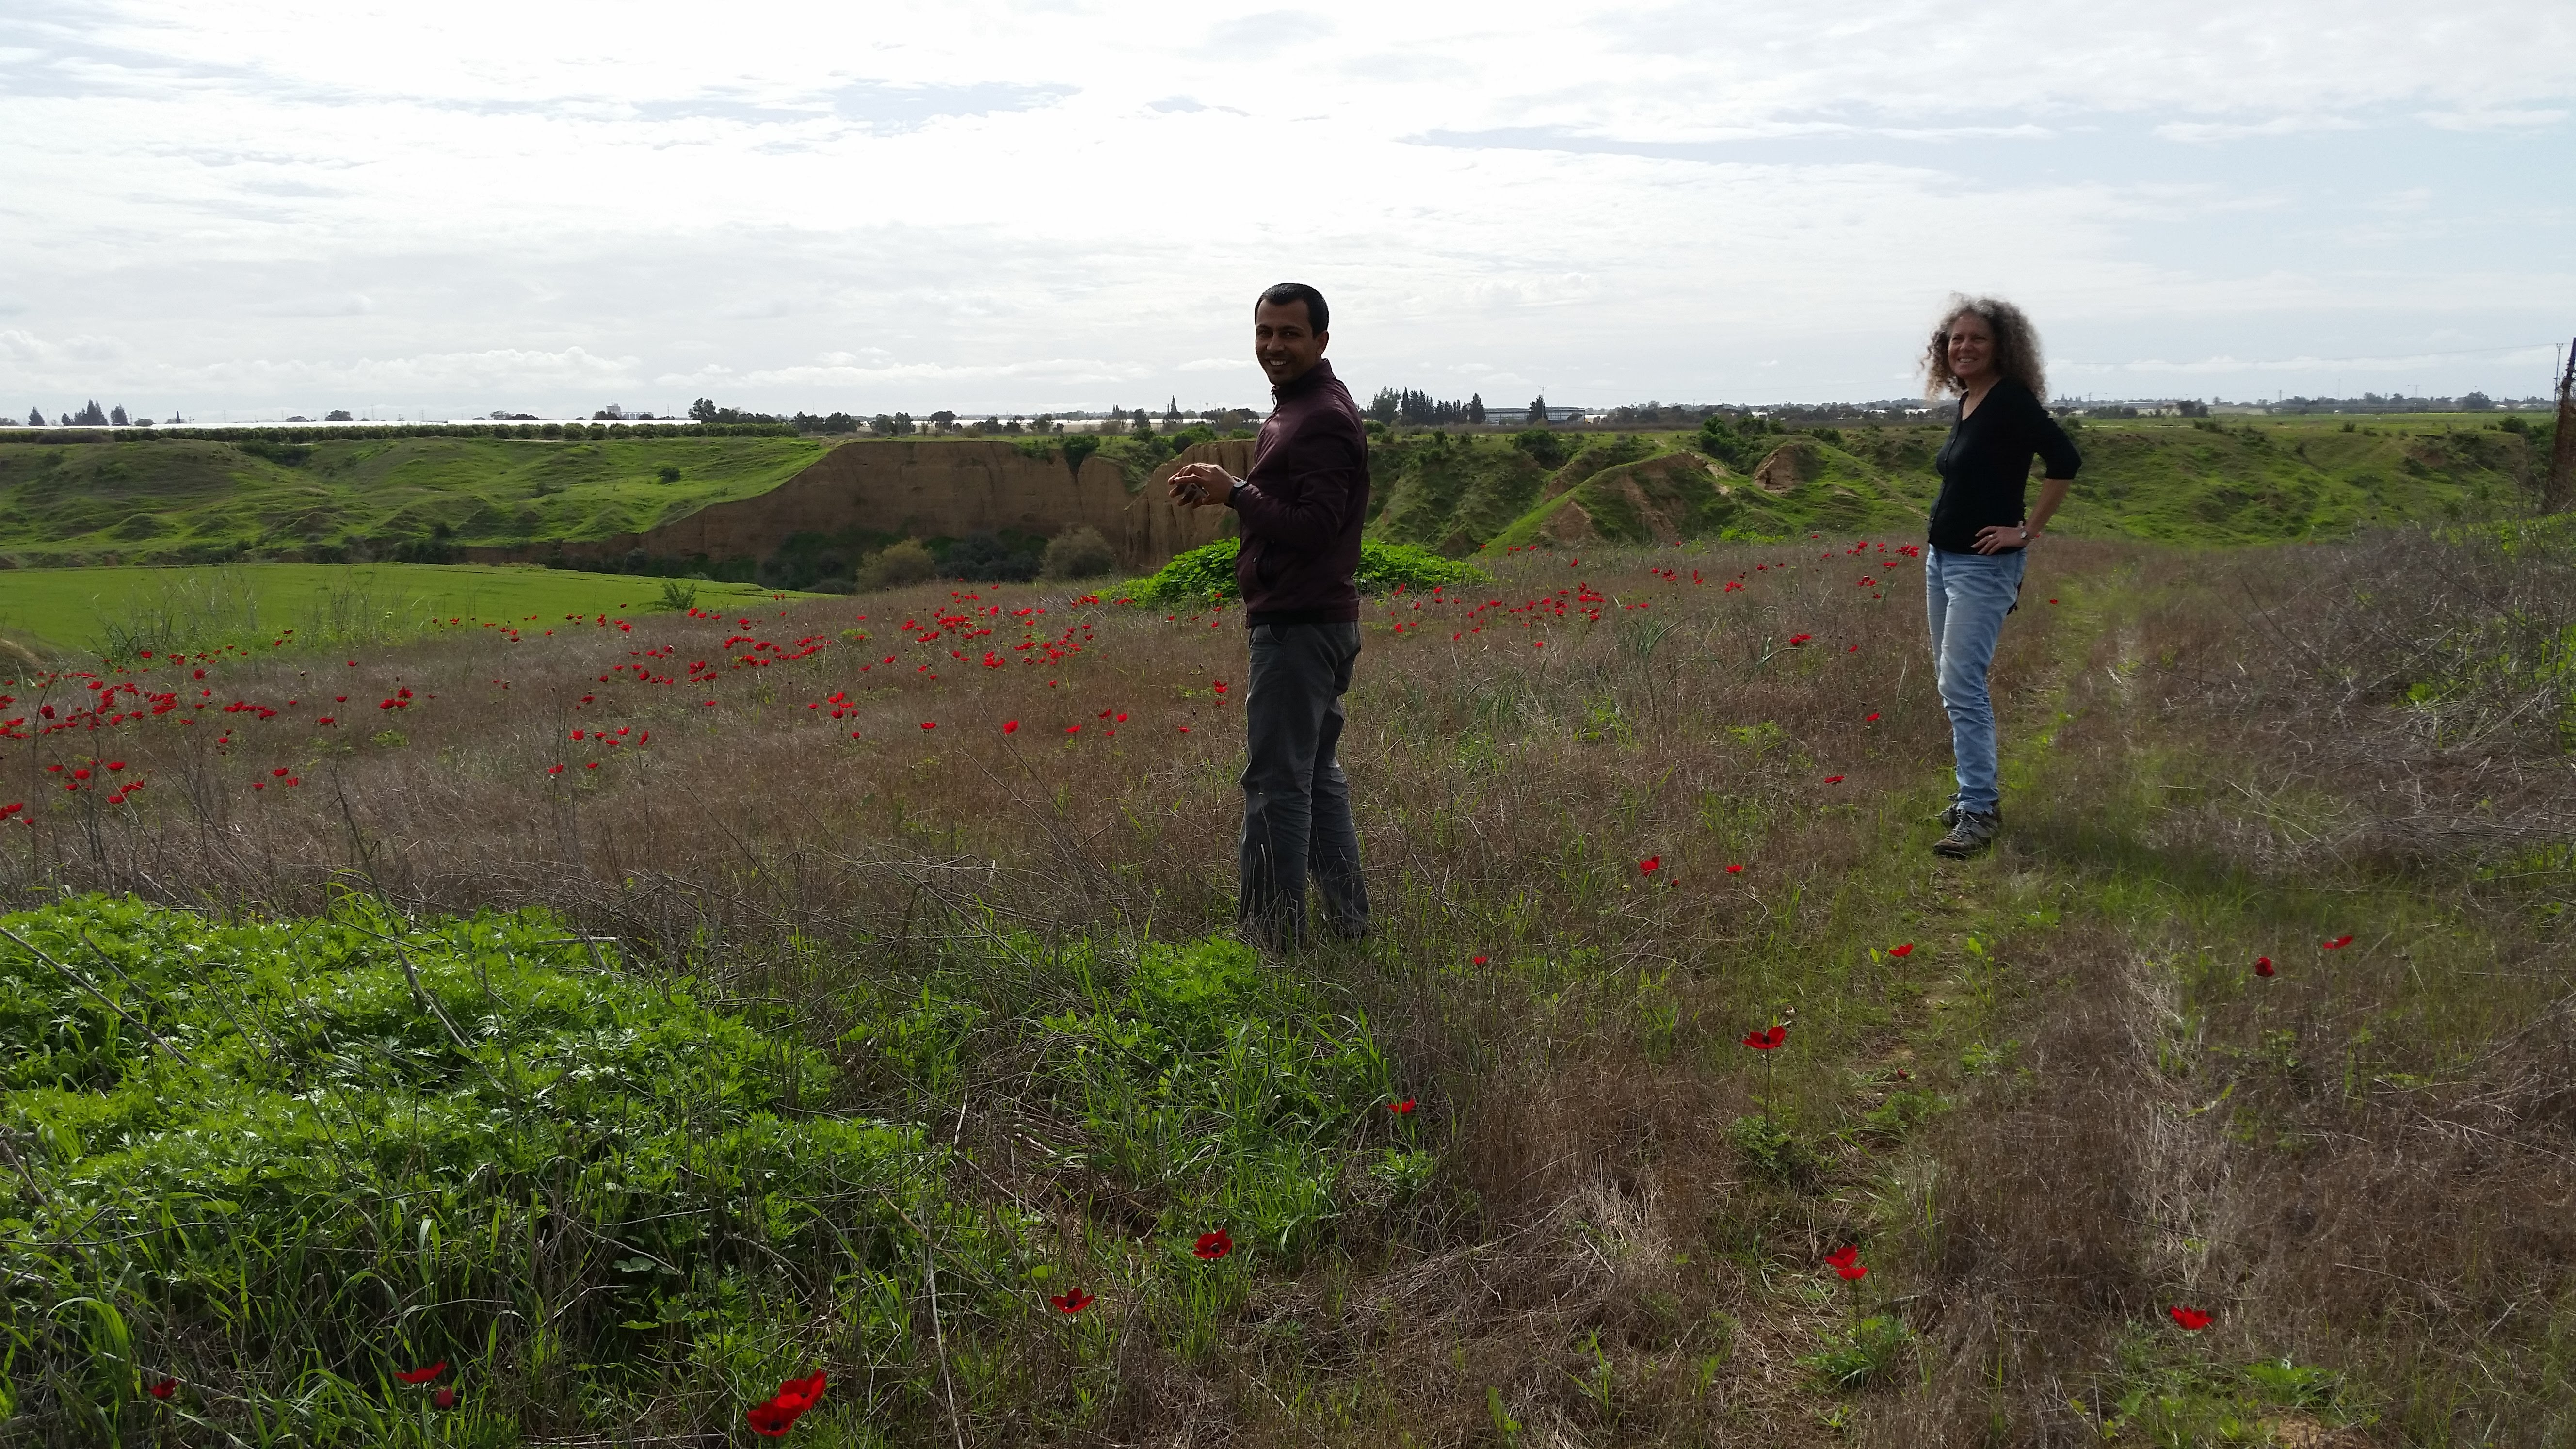 Rotem and Anil in Migda's Red south